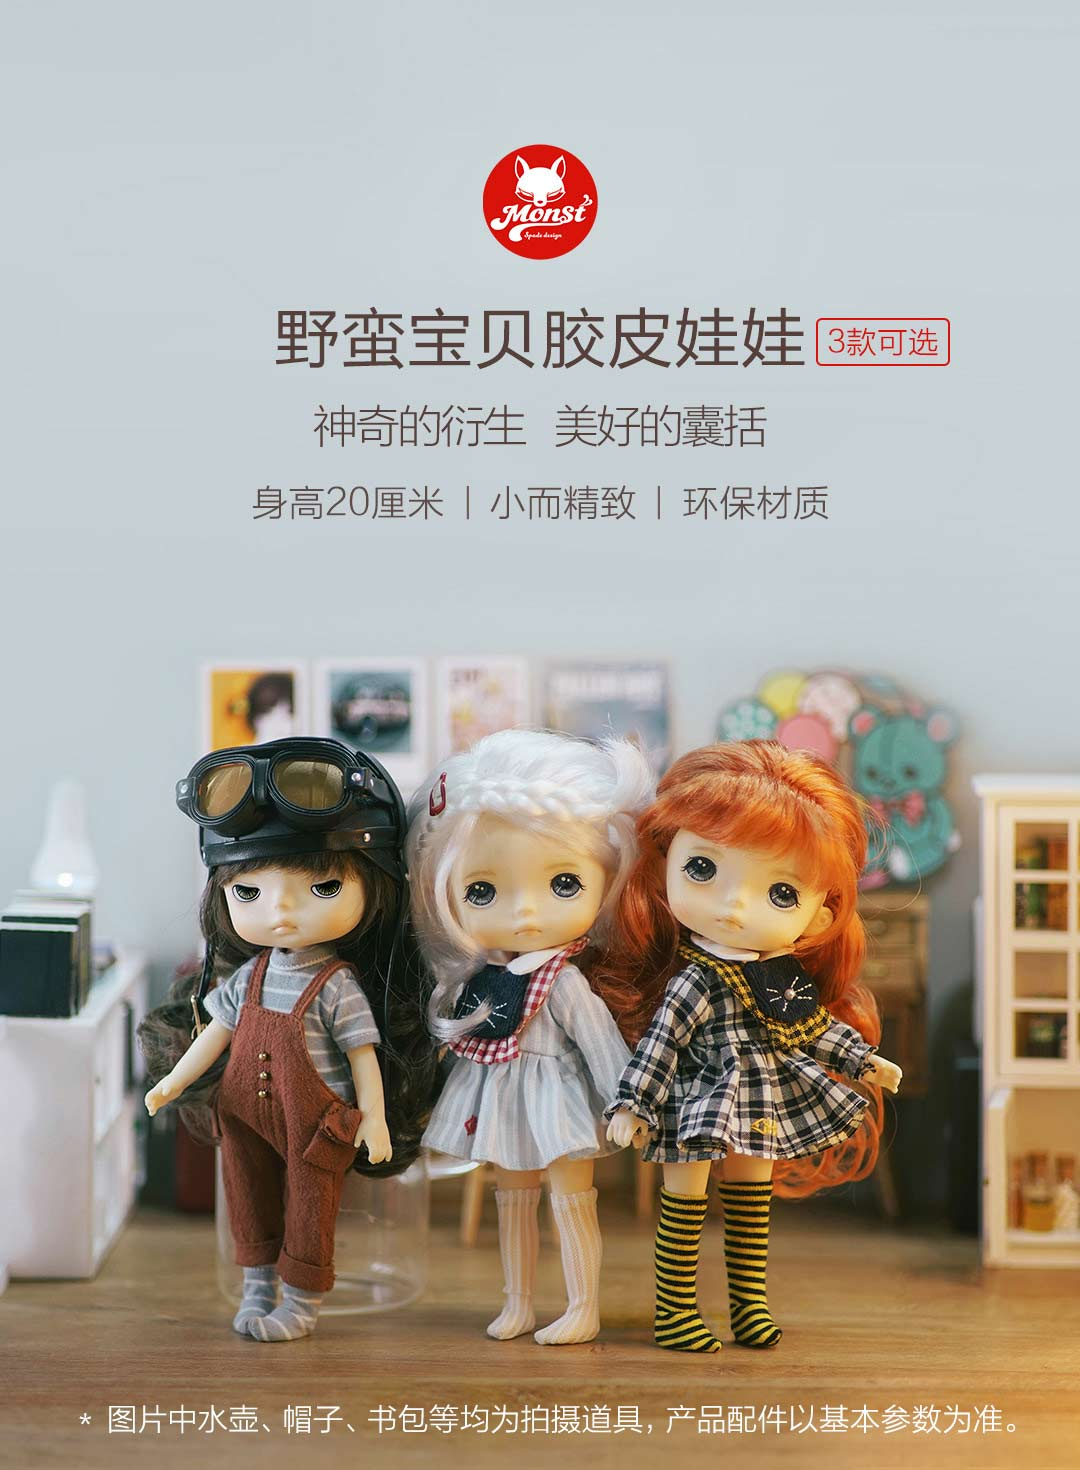 Youpin Monst Savage Baby Rubber Dolls Height 20 Centimeters Cabinet Delicate-New